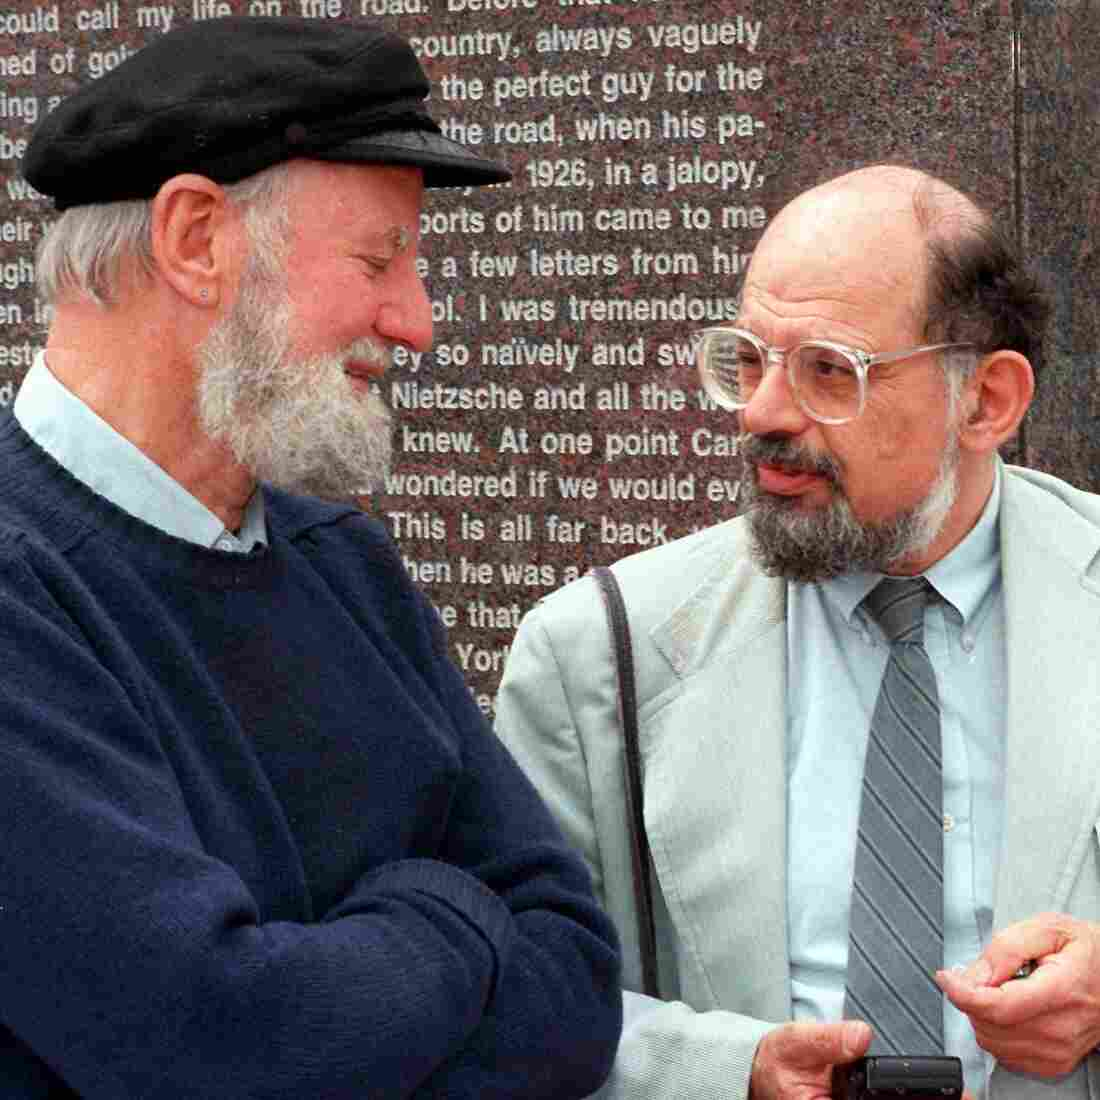 Book News: Lawrence Ferlinghetti's Travel Journals Will Be Published